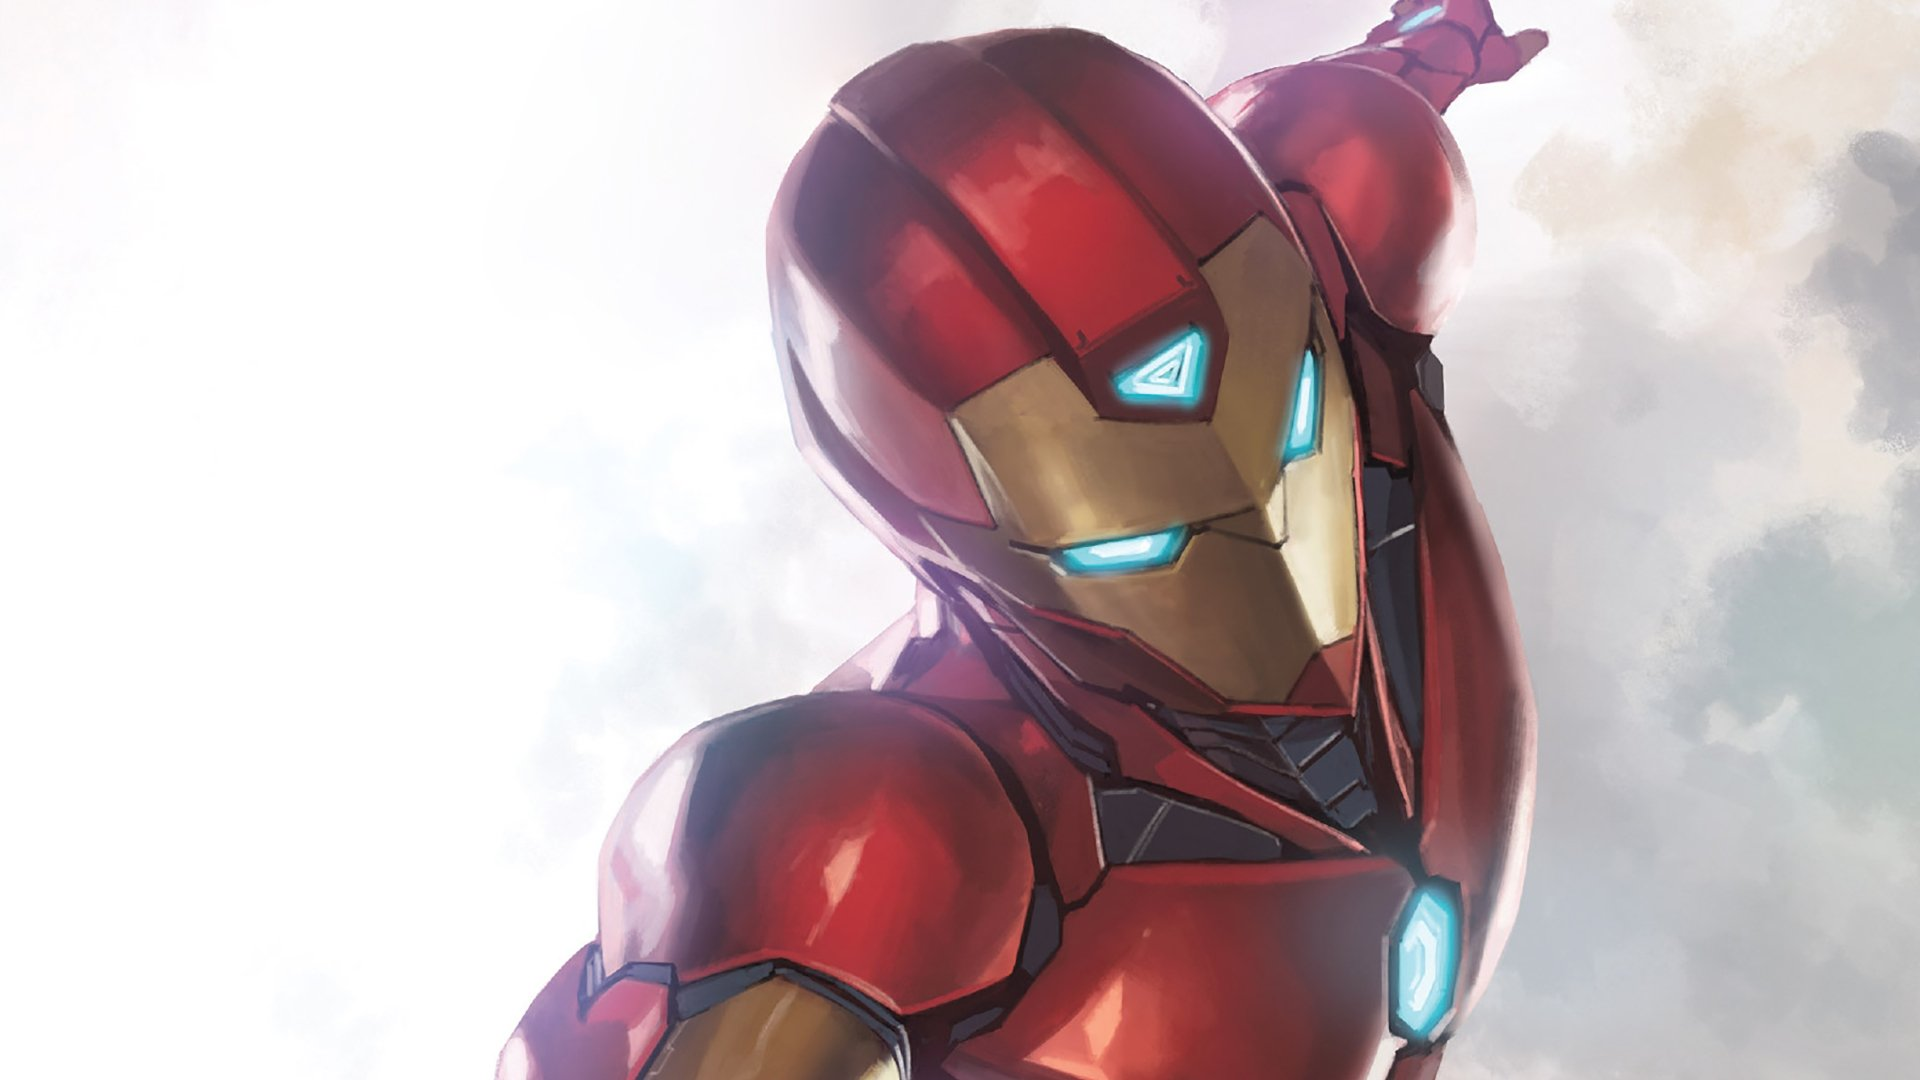 Iron man hd wallpaper background image 1920x1080 id - Iron man heart wallpaper ...